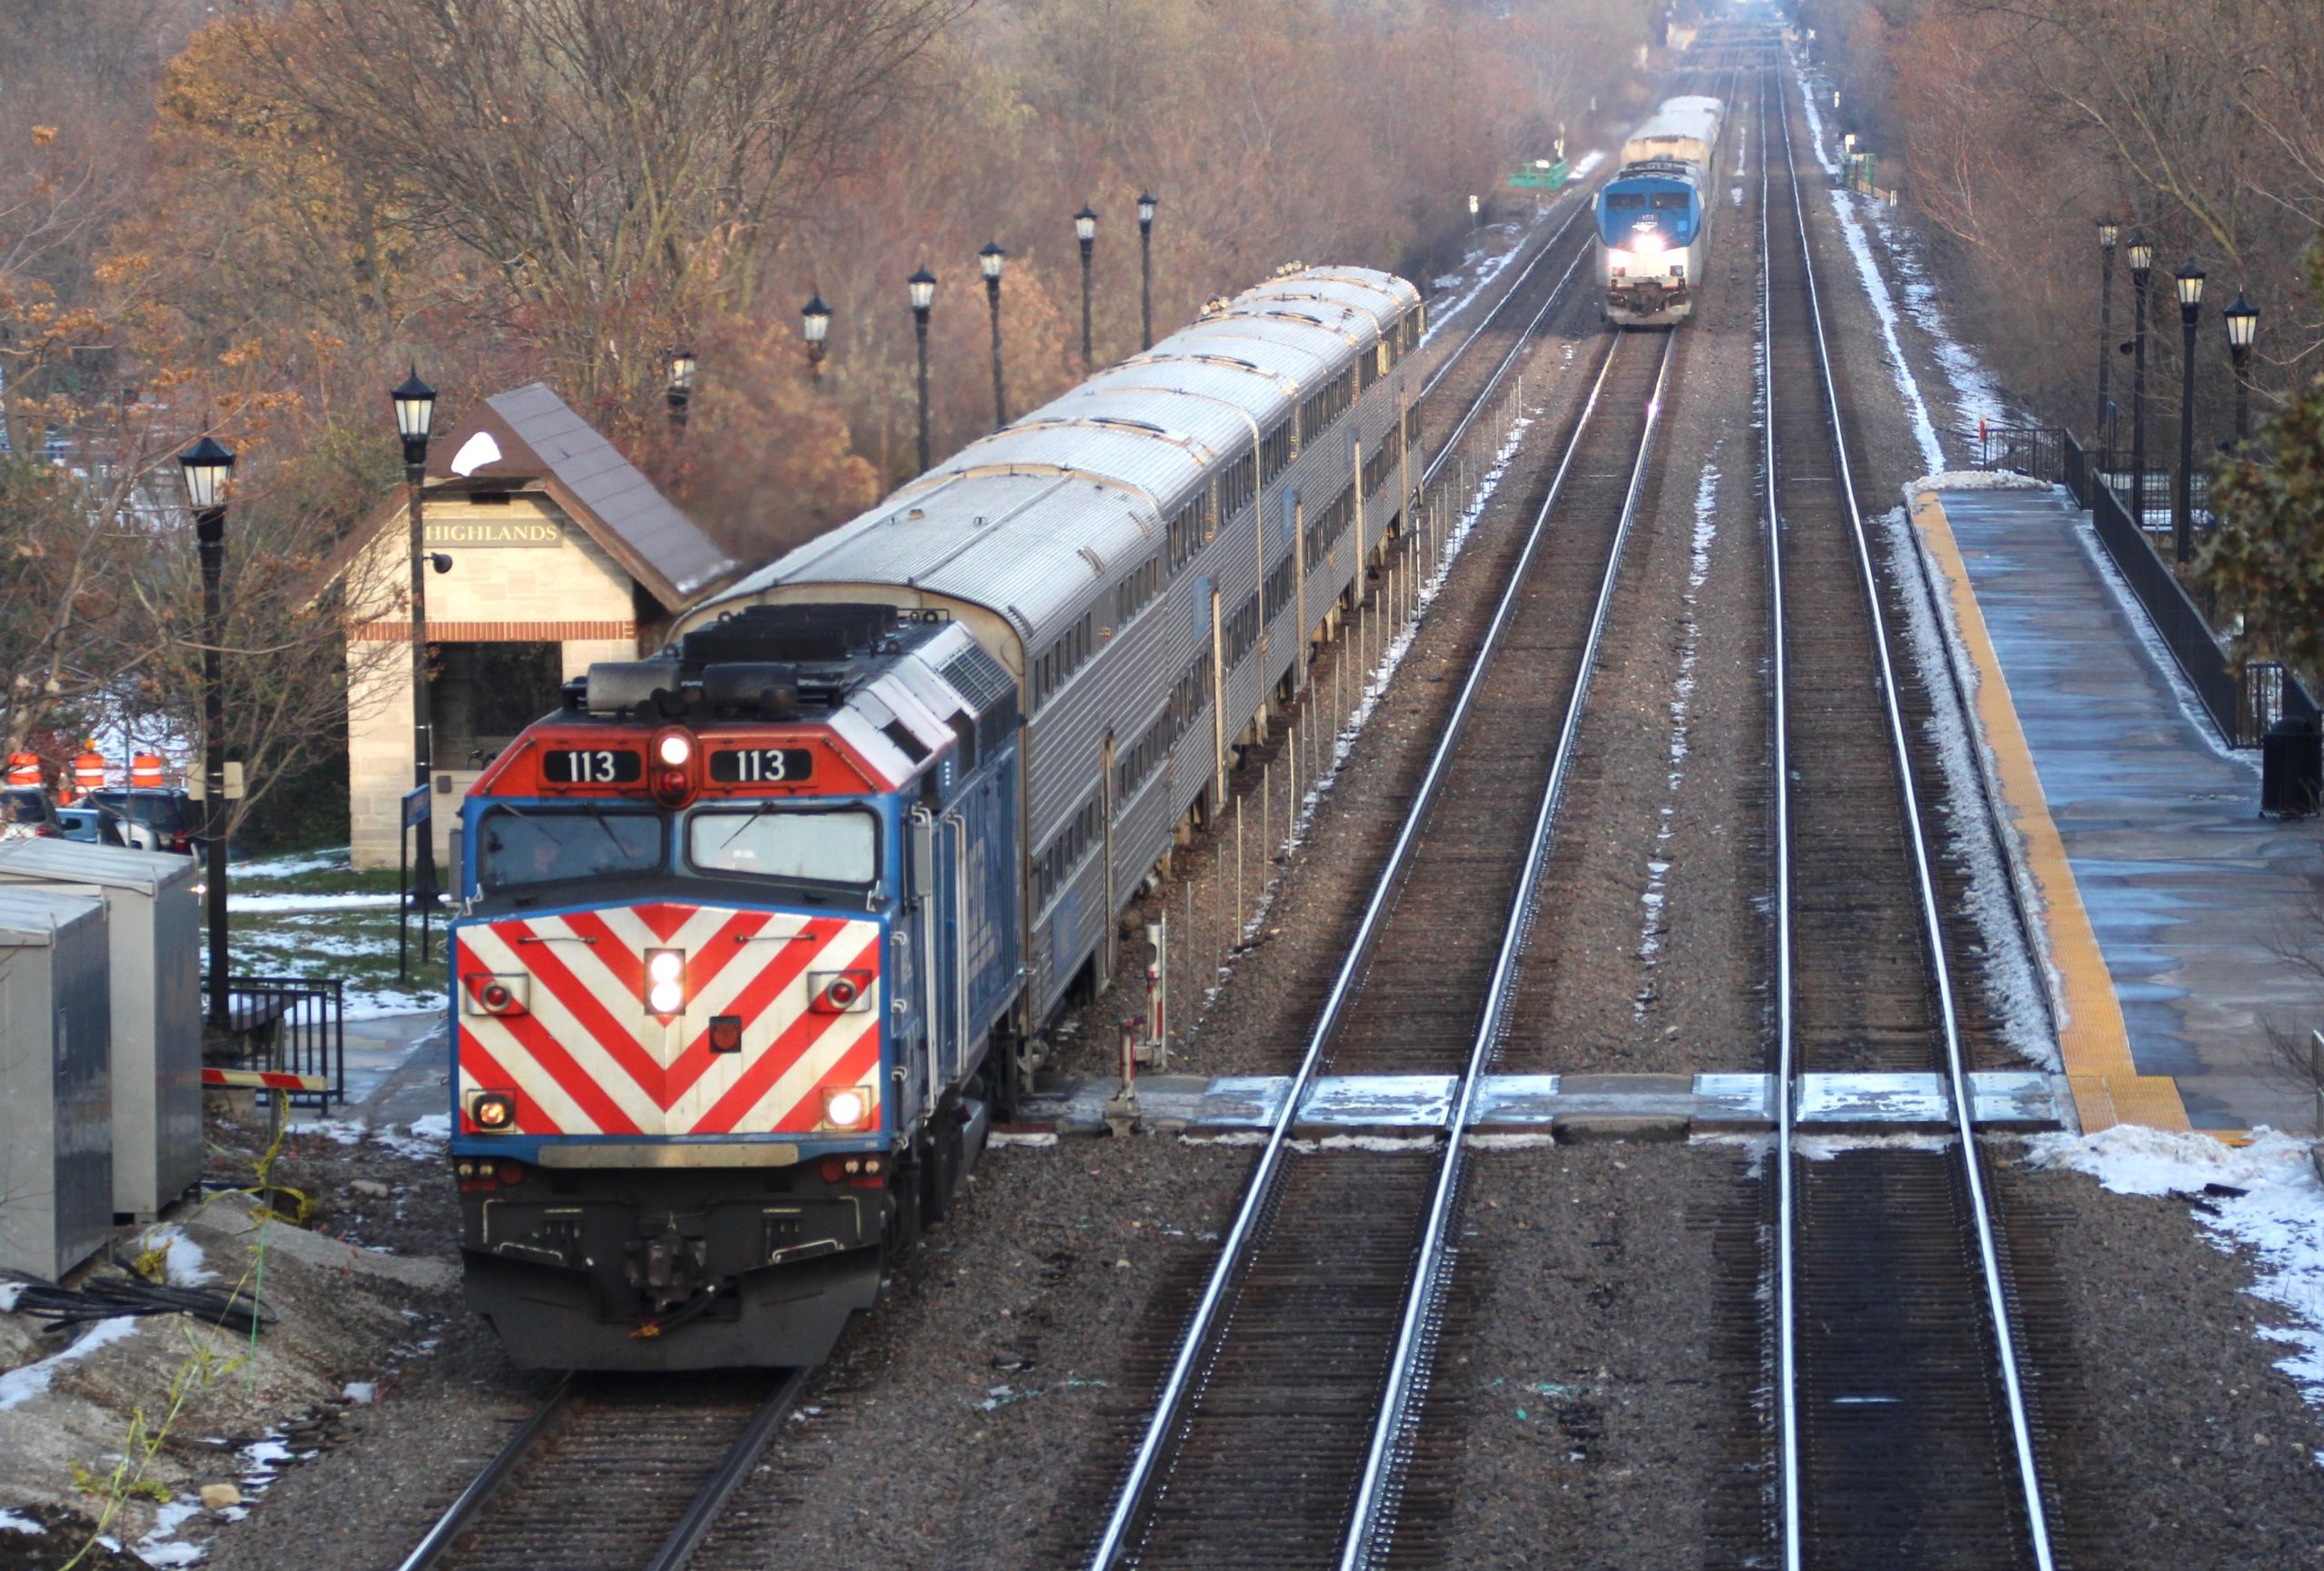 A Metra BNSF train stops at Highlands station in Hinsdale, Ill., on Nov. 15, 2019 as Amtrak's Southwest Chief approaches. Highlands is among the 31 stations to be upgraded by Metra in the next five years.